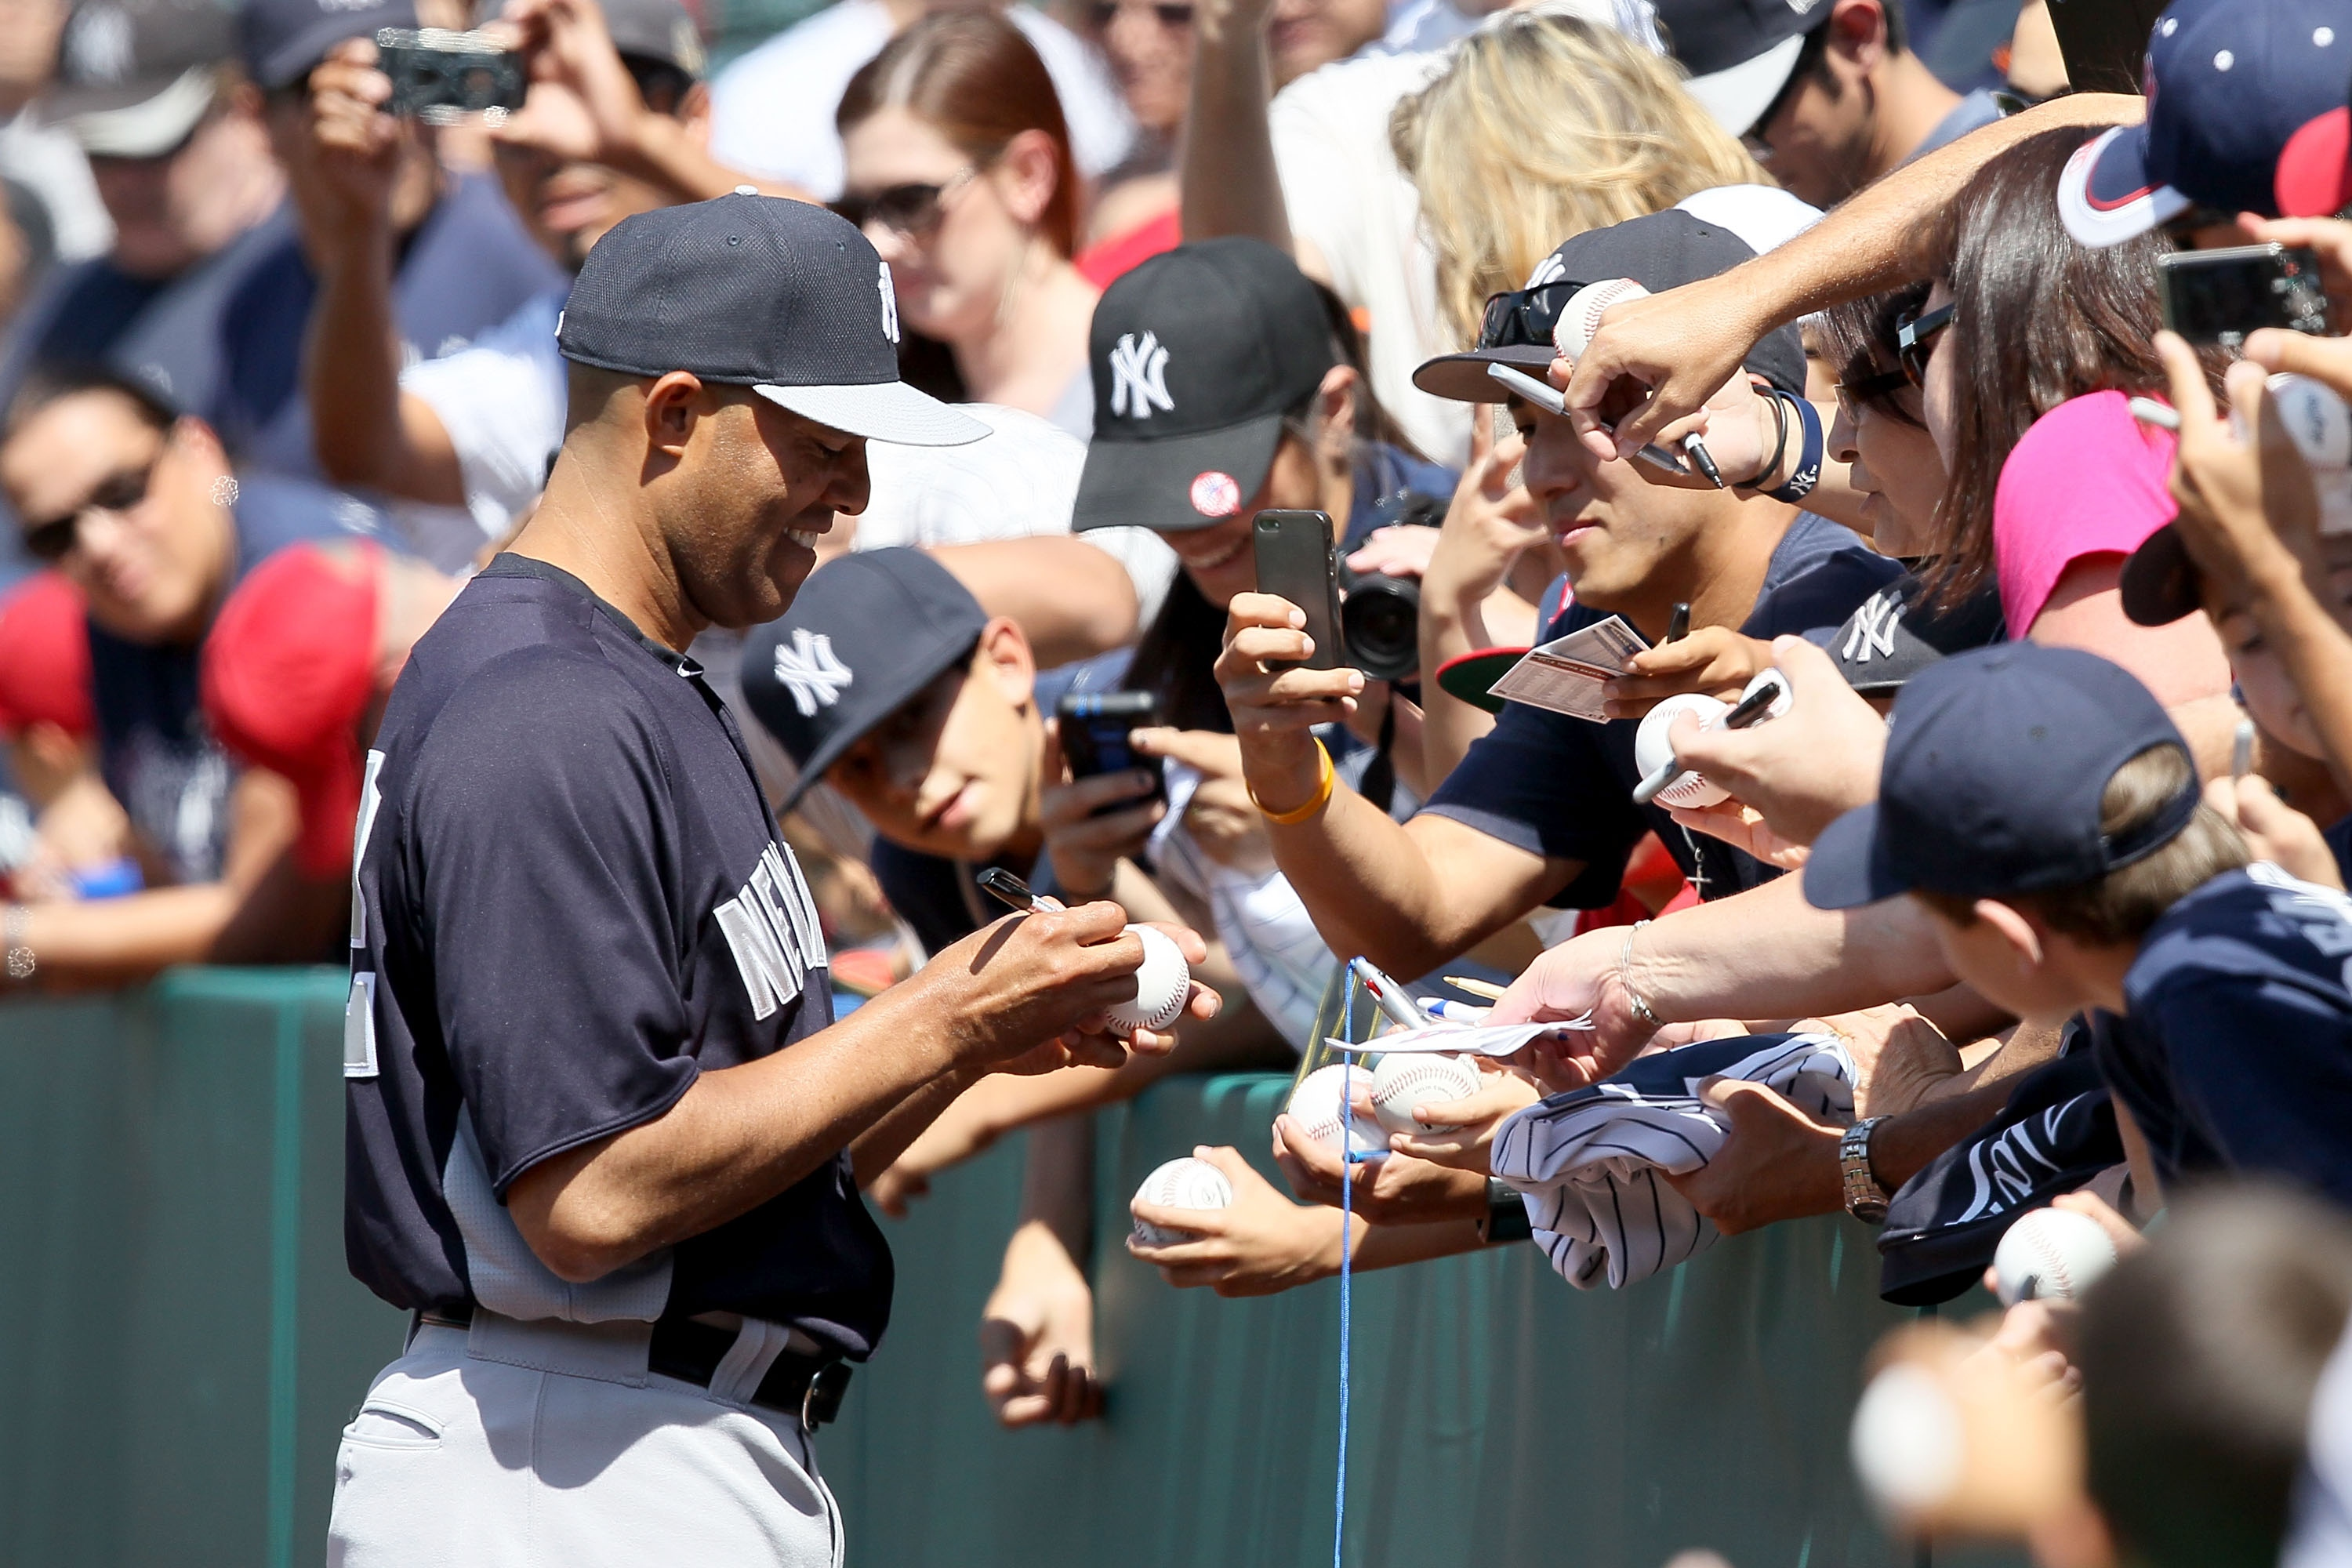 Sunday will be Mariano Rivera's final regular-season appearance at Angels Stadium as a Yankee. (Getty Images)